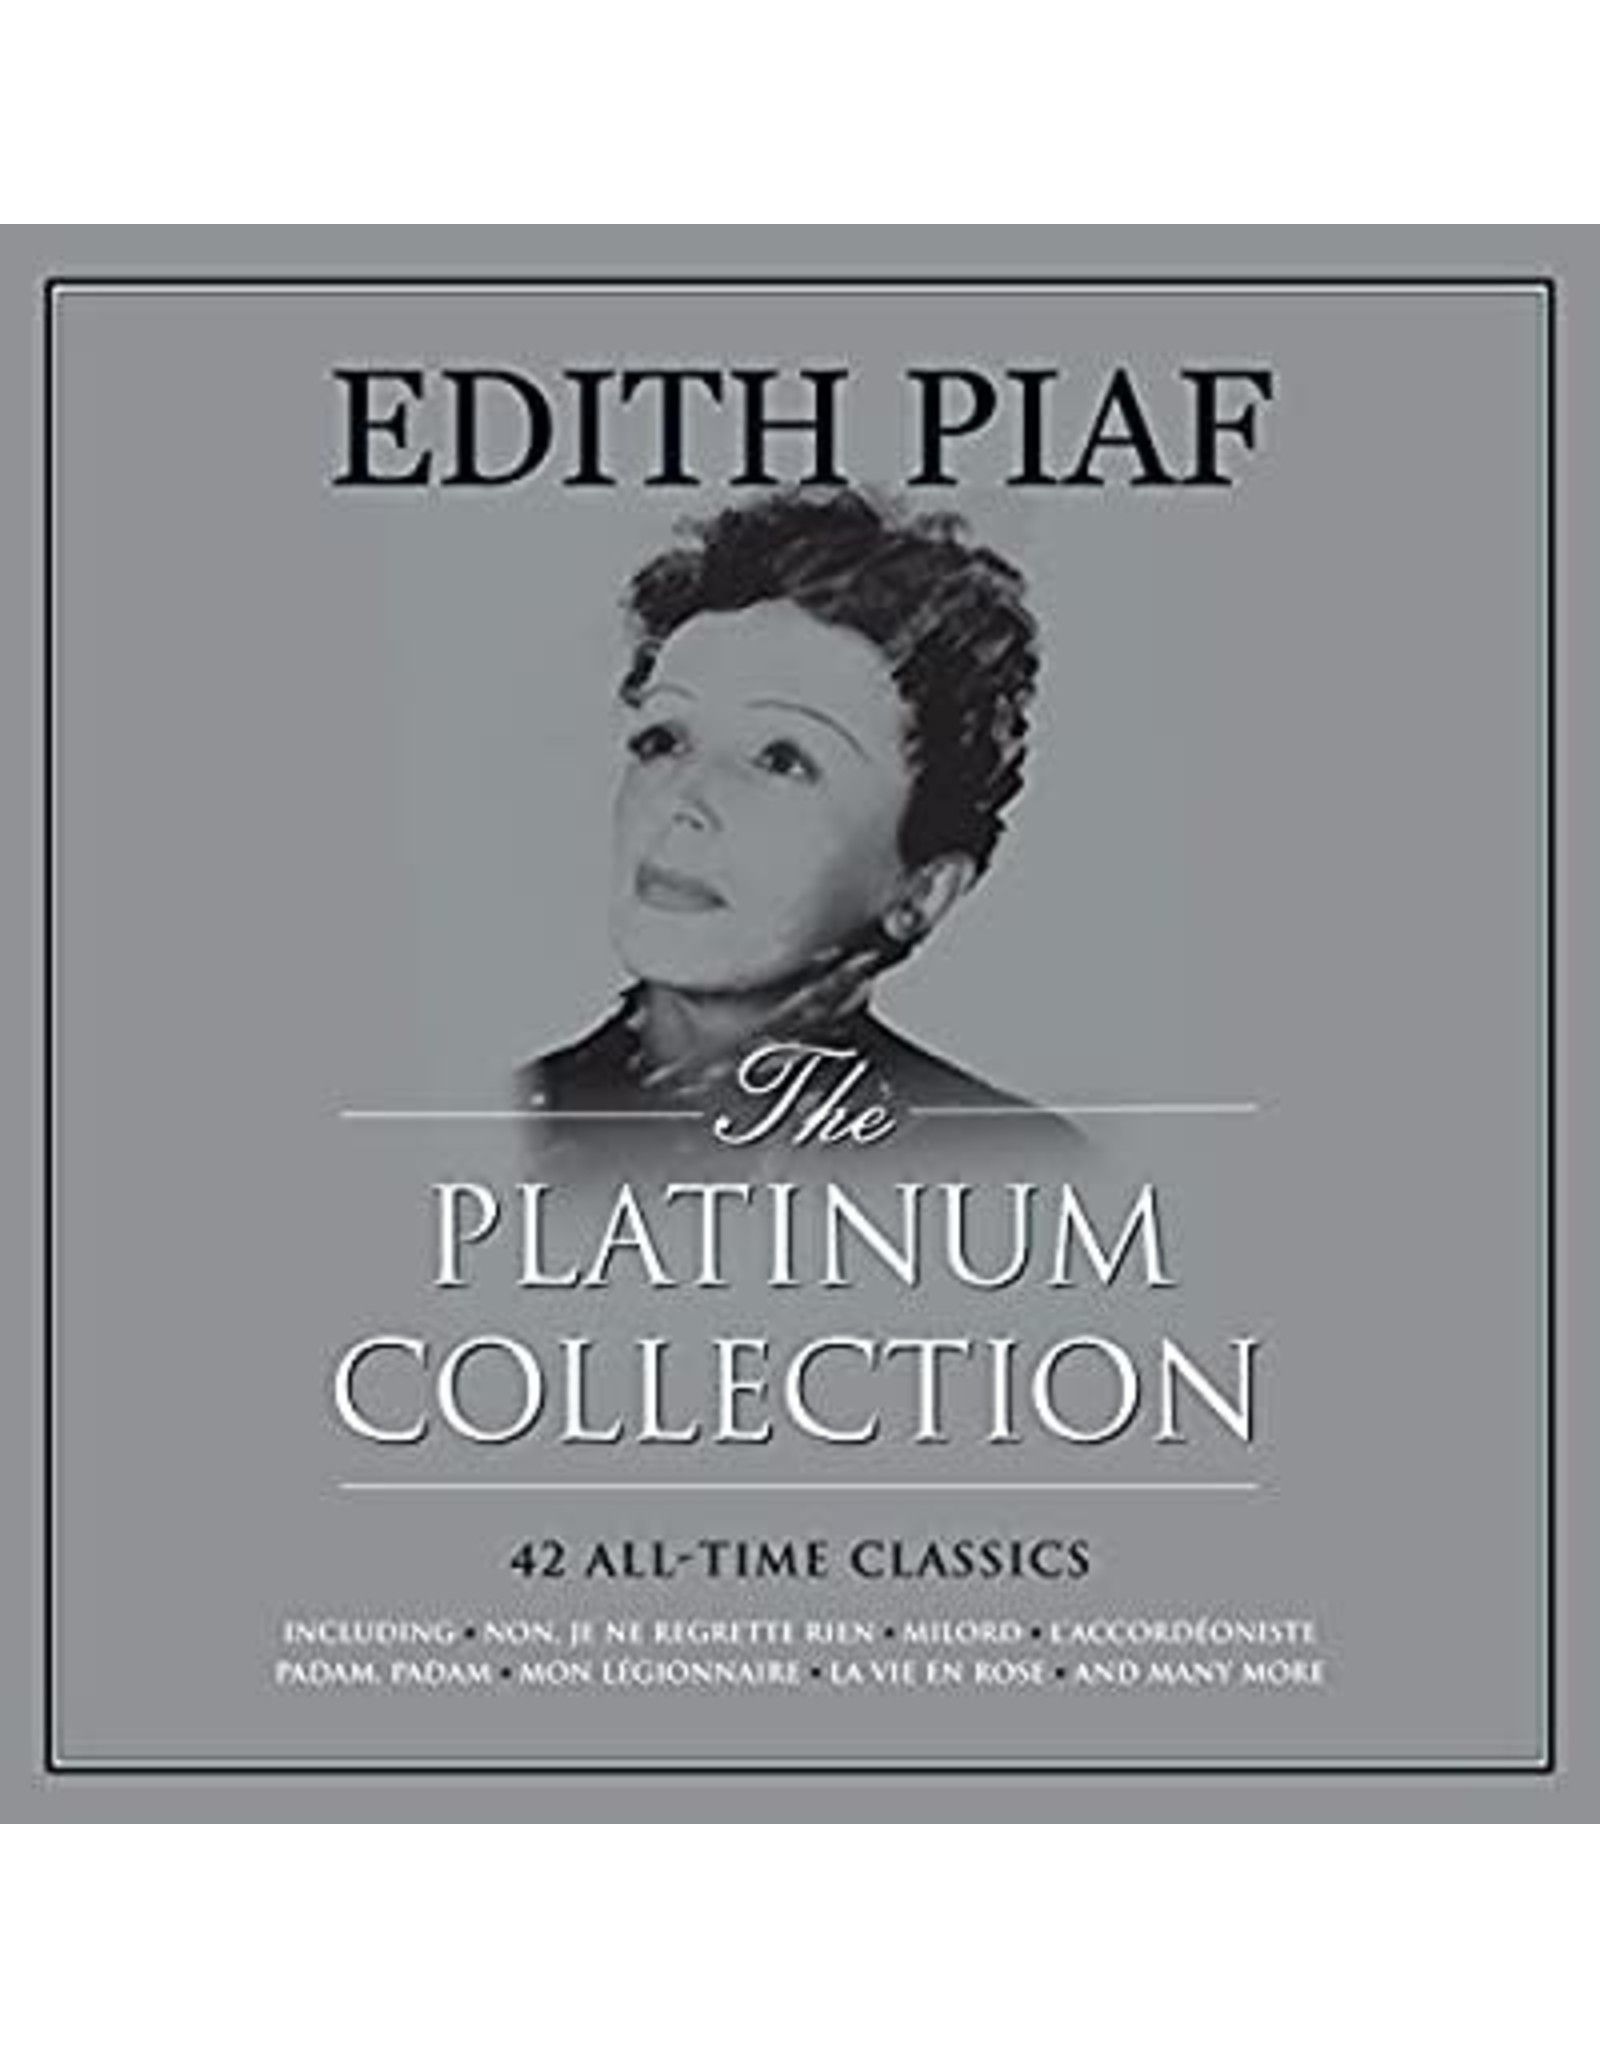 New Vinyl Edith Piaf - The Platinum Collection (UK Import, Colored) 3LP